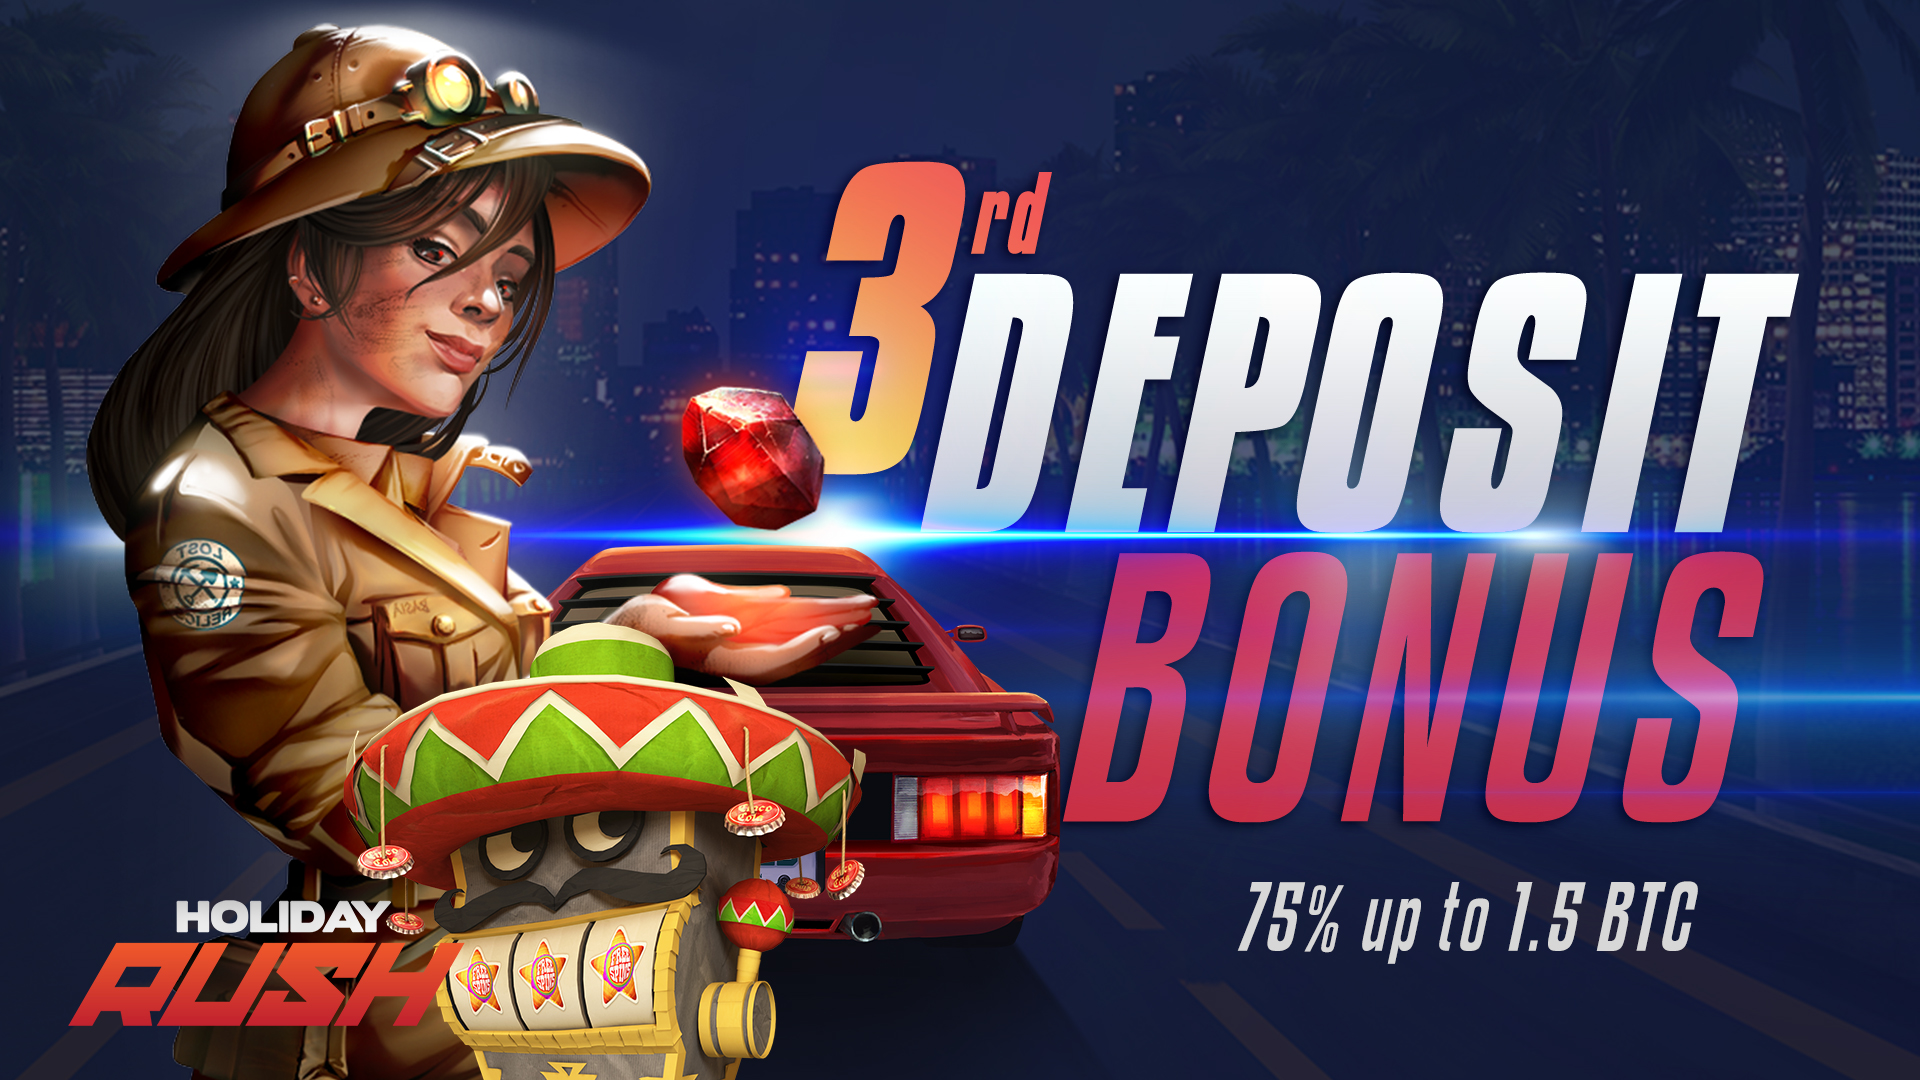 Exclusive 75% up to 1.5 BTC Third Deposit Bonus at mBitcasino